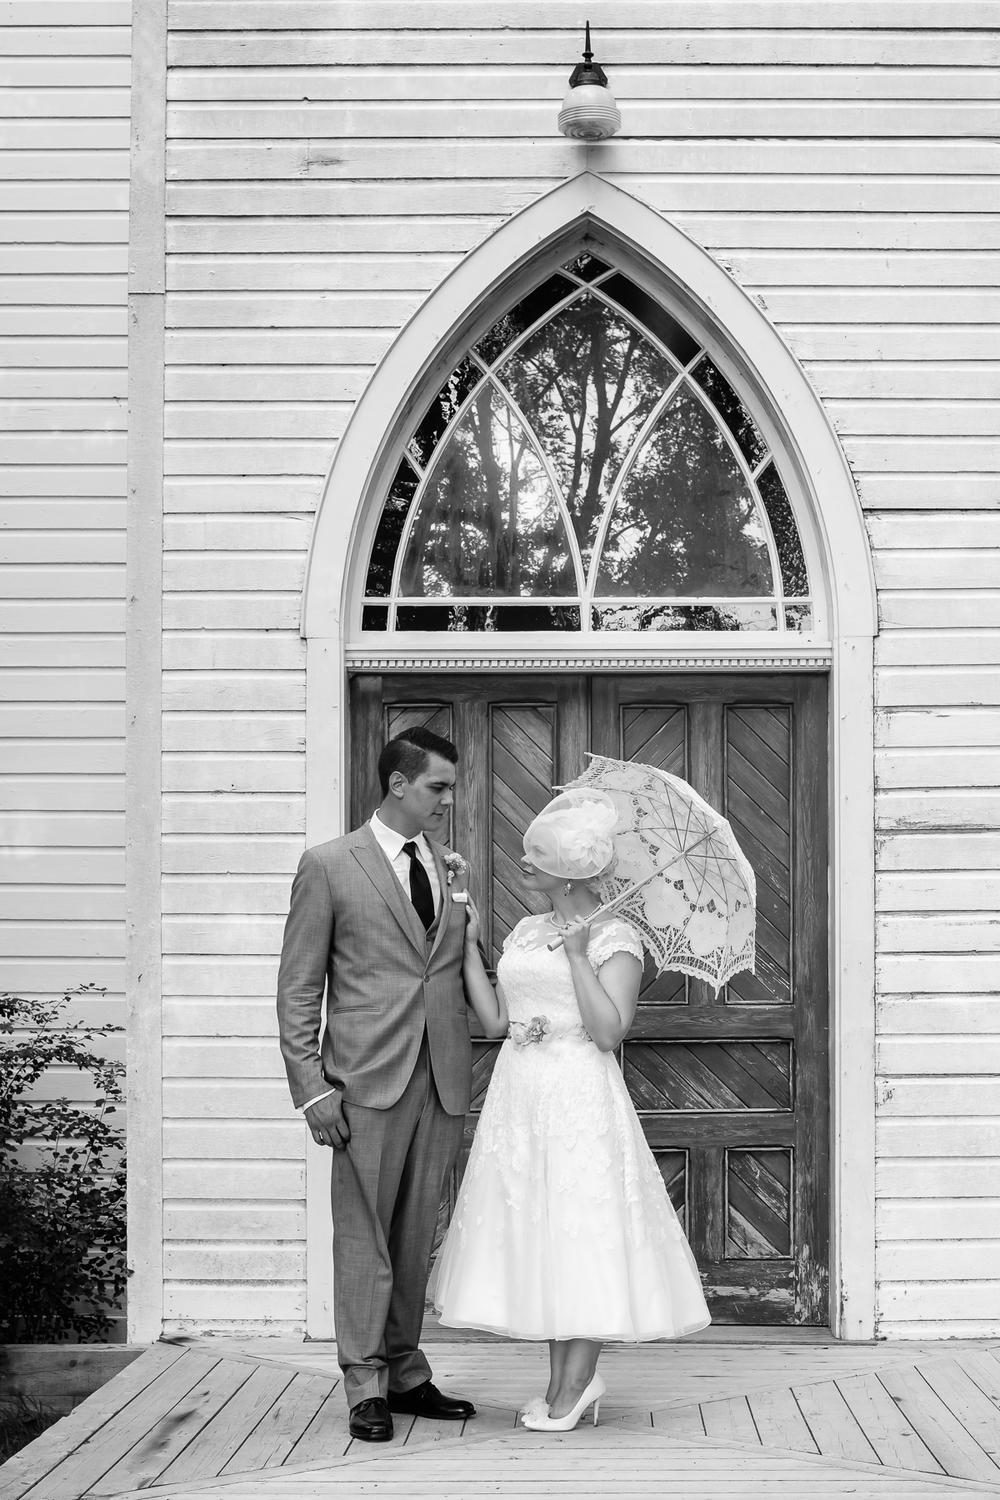 Wedding - Cumberland Heritage Village Museum.